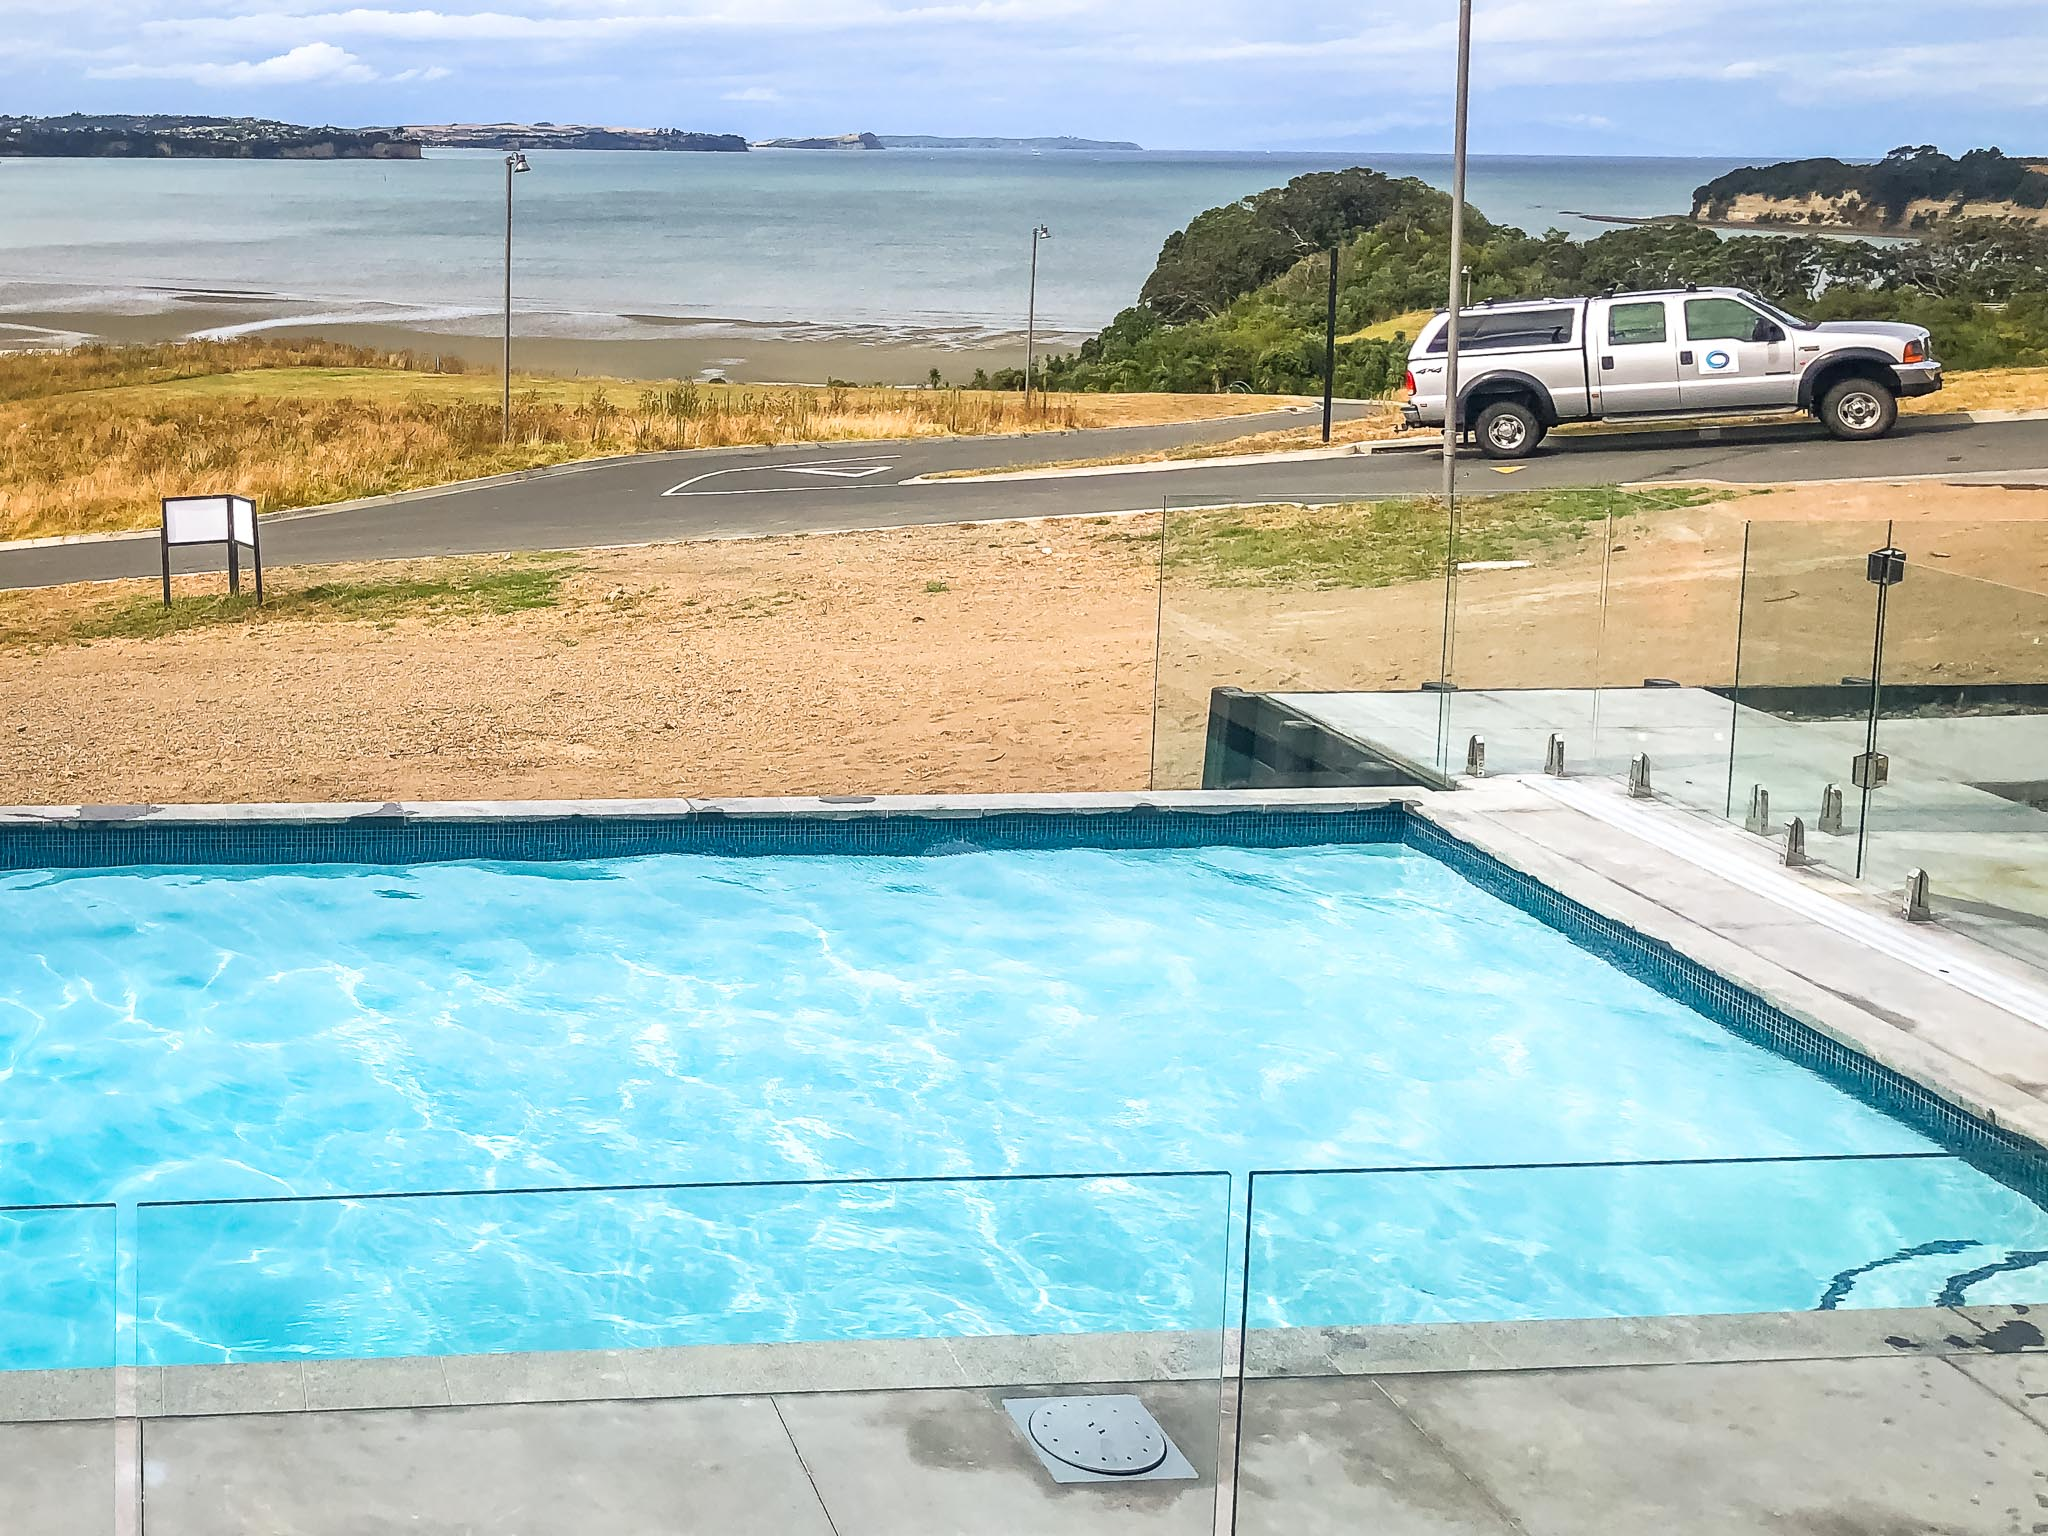 10x4m concrete pool by Mobius Pools